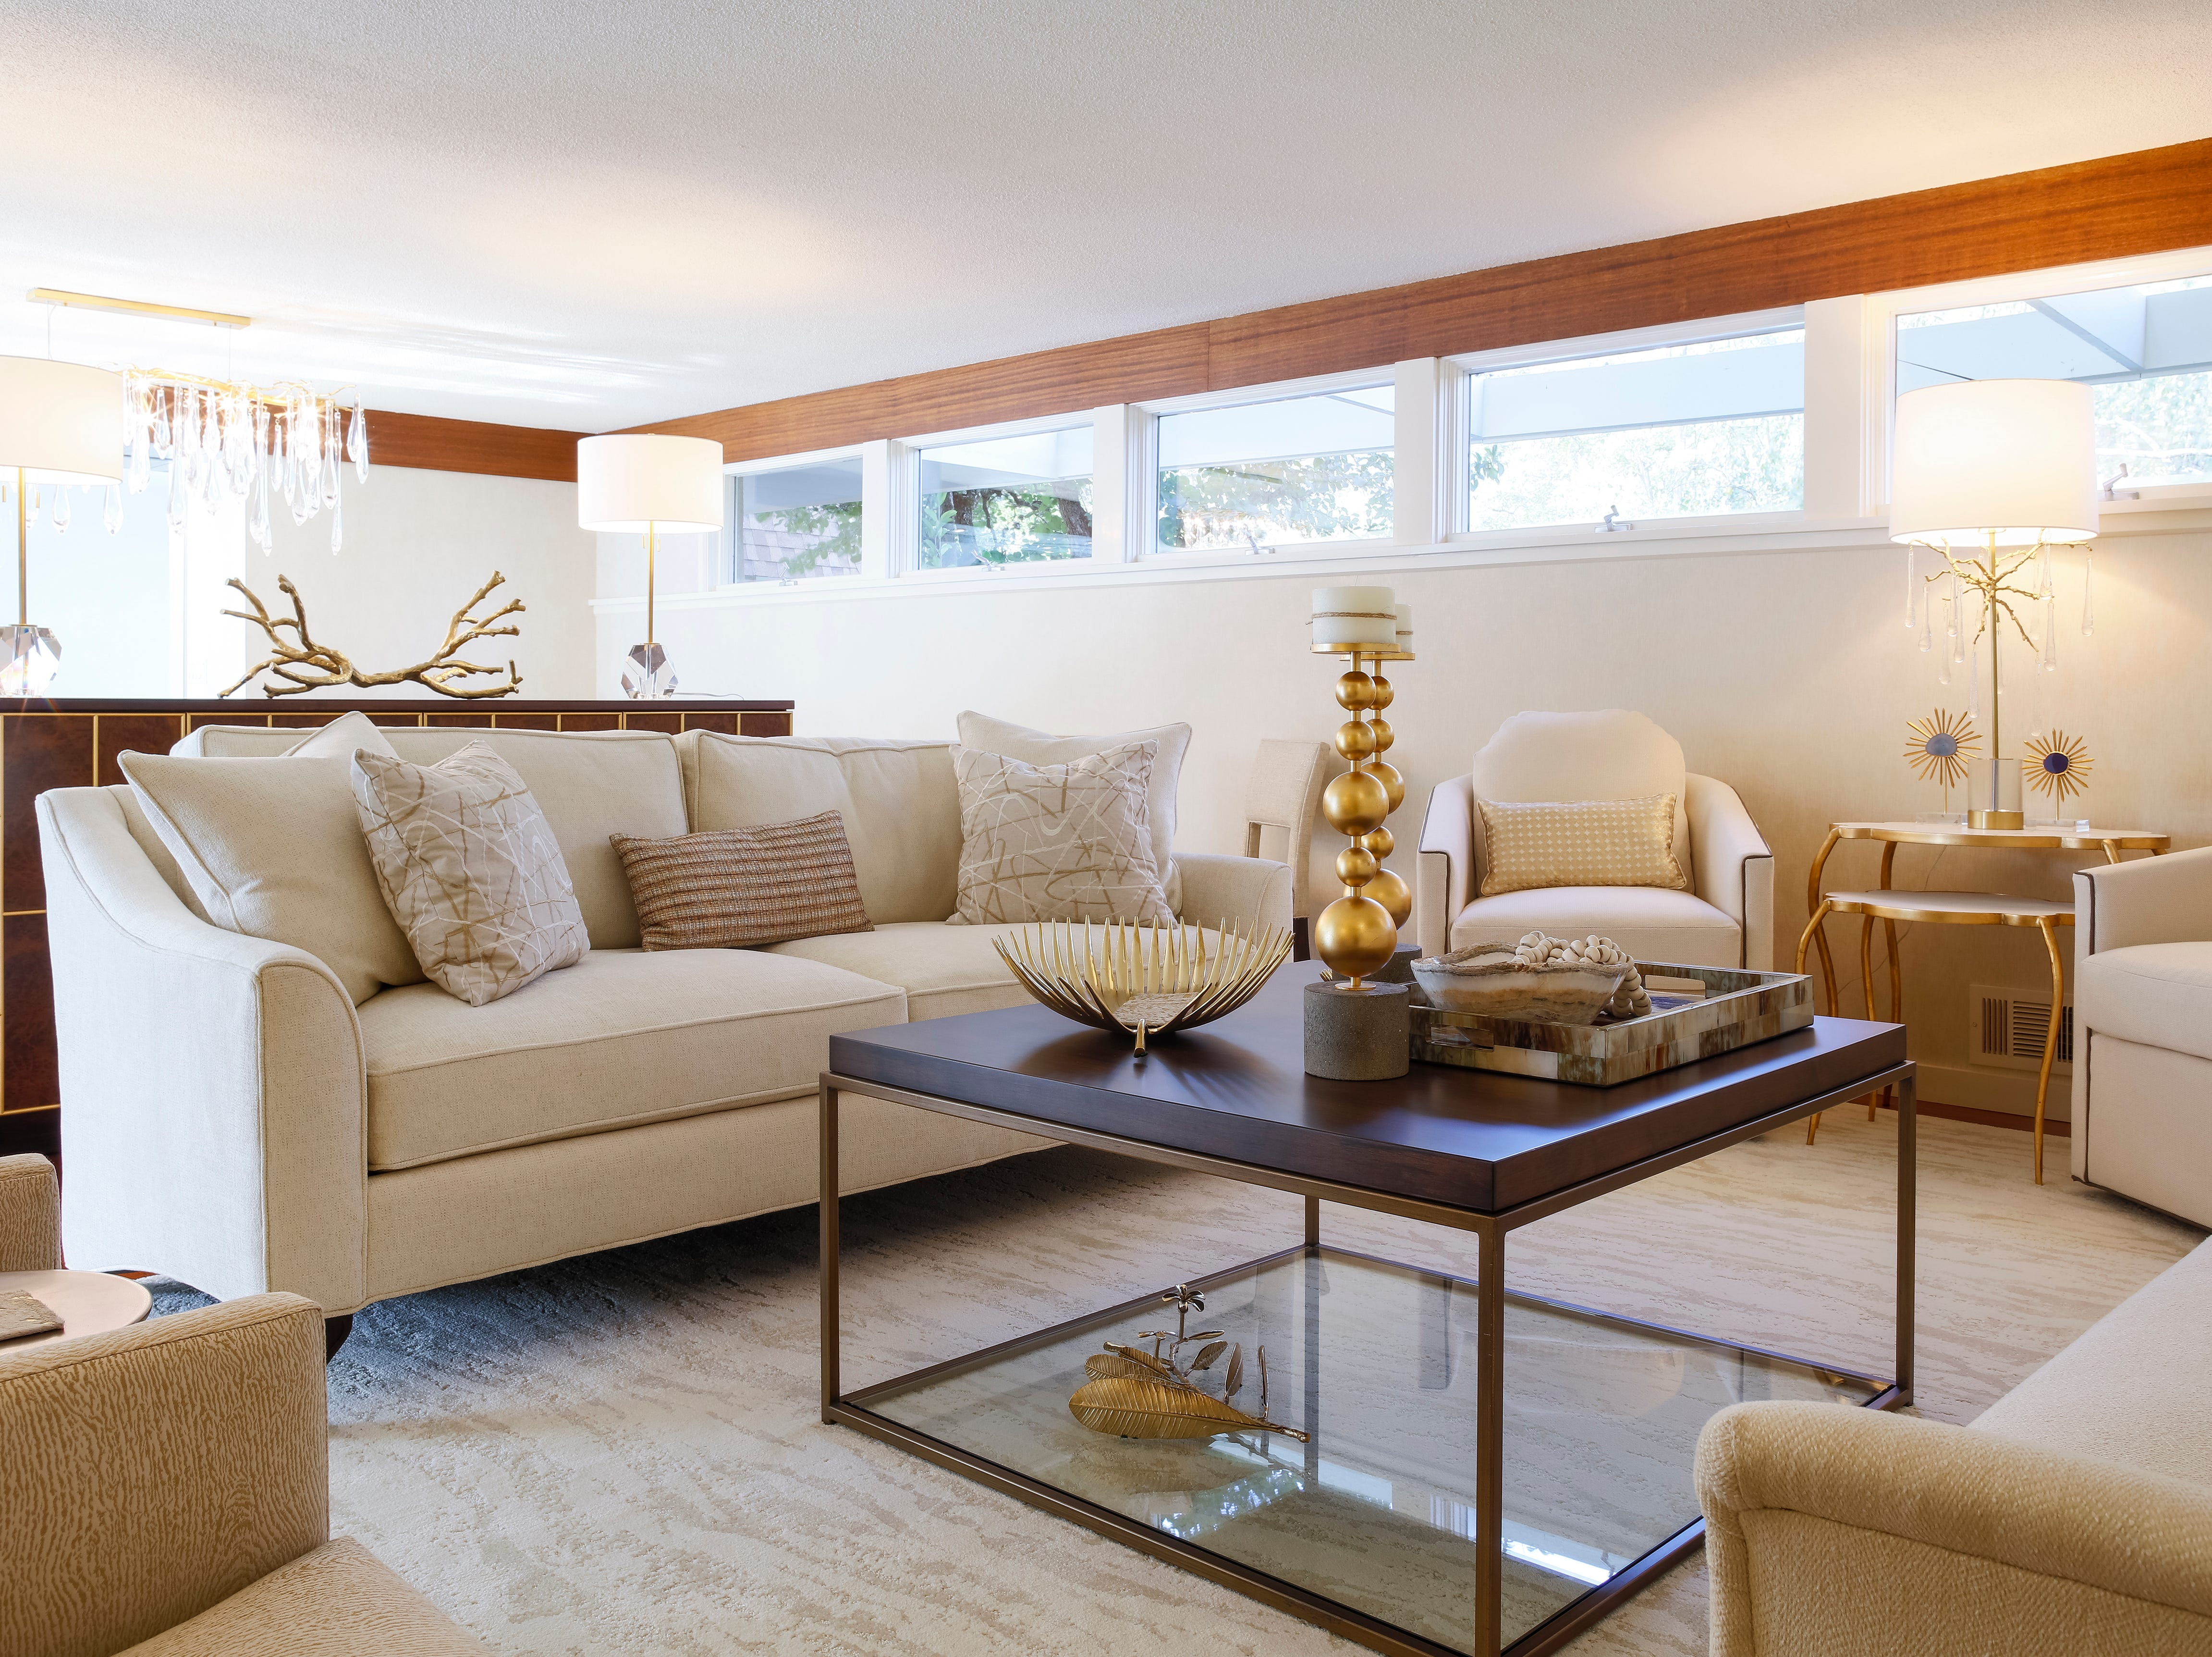 The living room is warm and comfortable with its mix of white furnishings accented with gold finishes and warm wood.